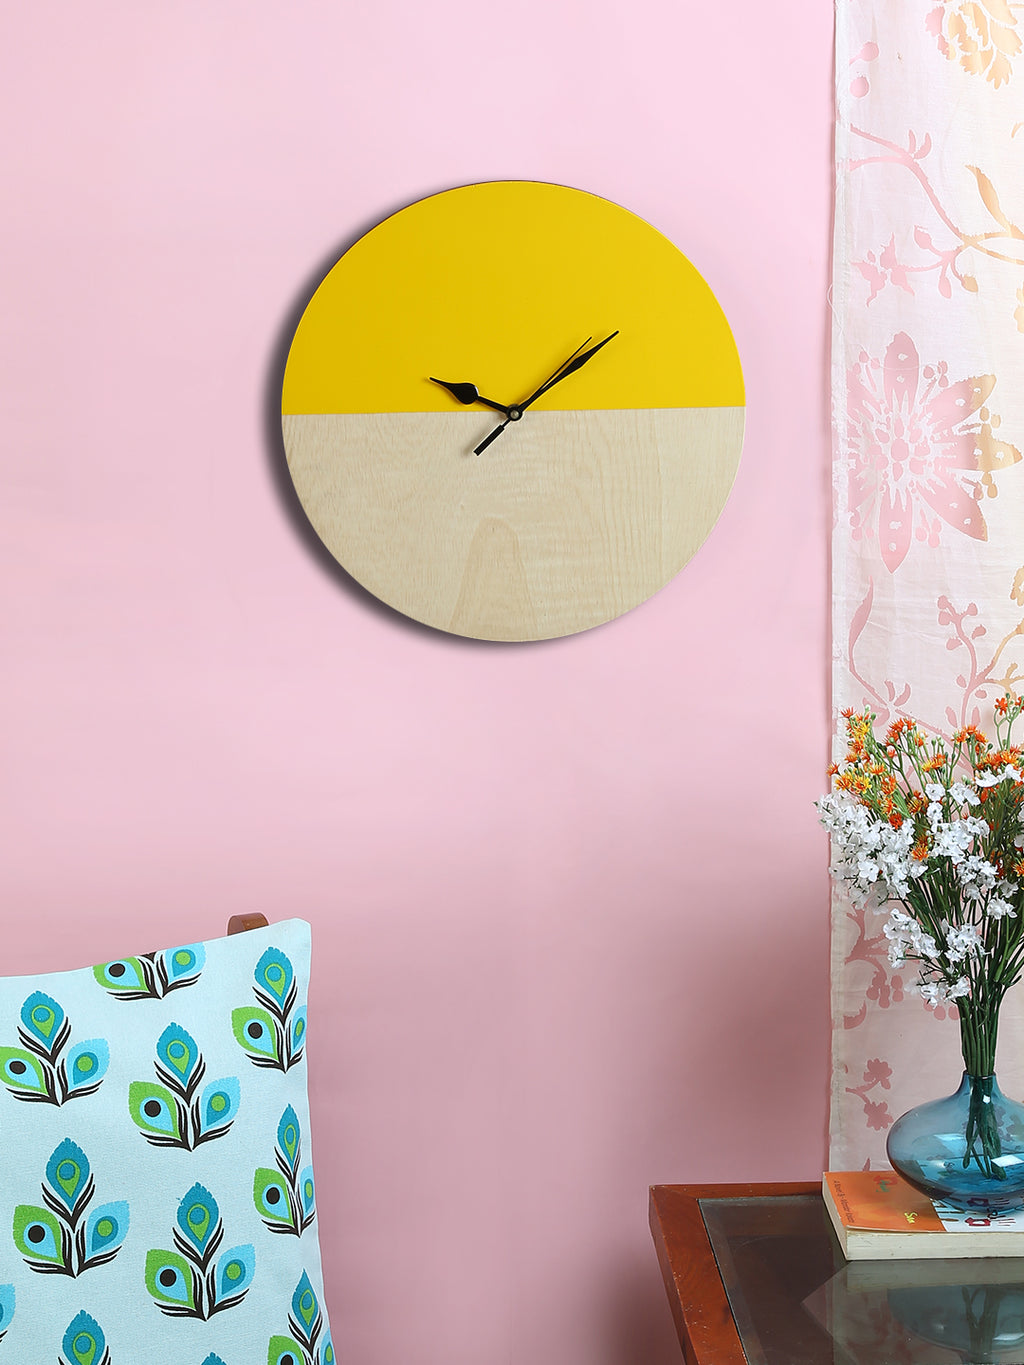 RANGRAGE Handcrafted Circular Yellow Wooden Wall Clock